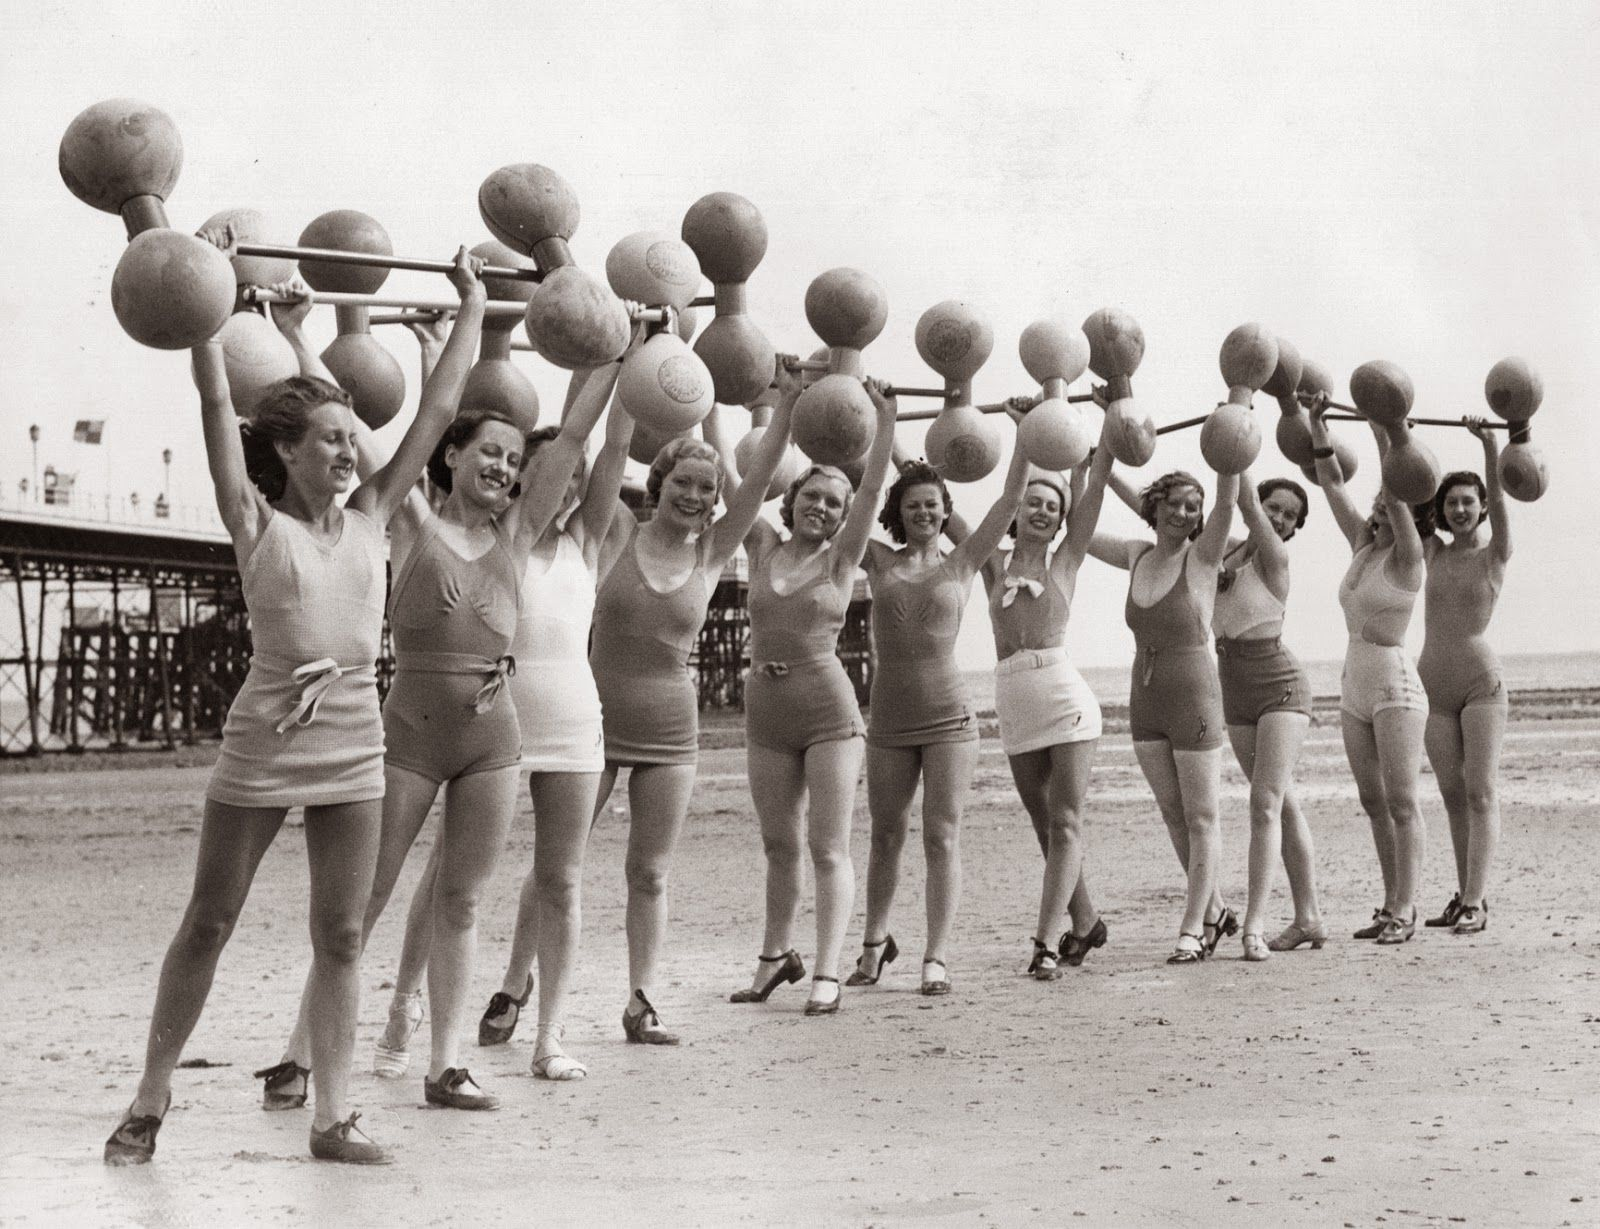 Vintage women exercising lifting not dumbbells they are lifting barbells folks